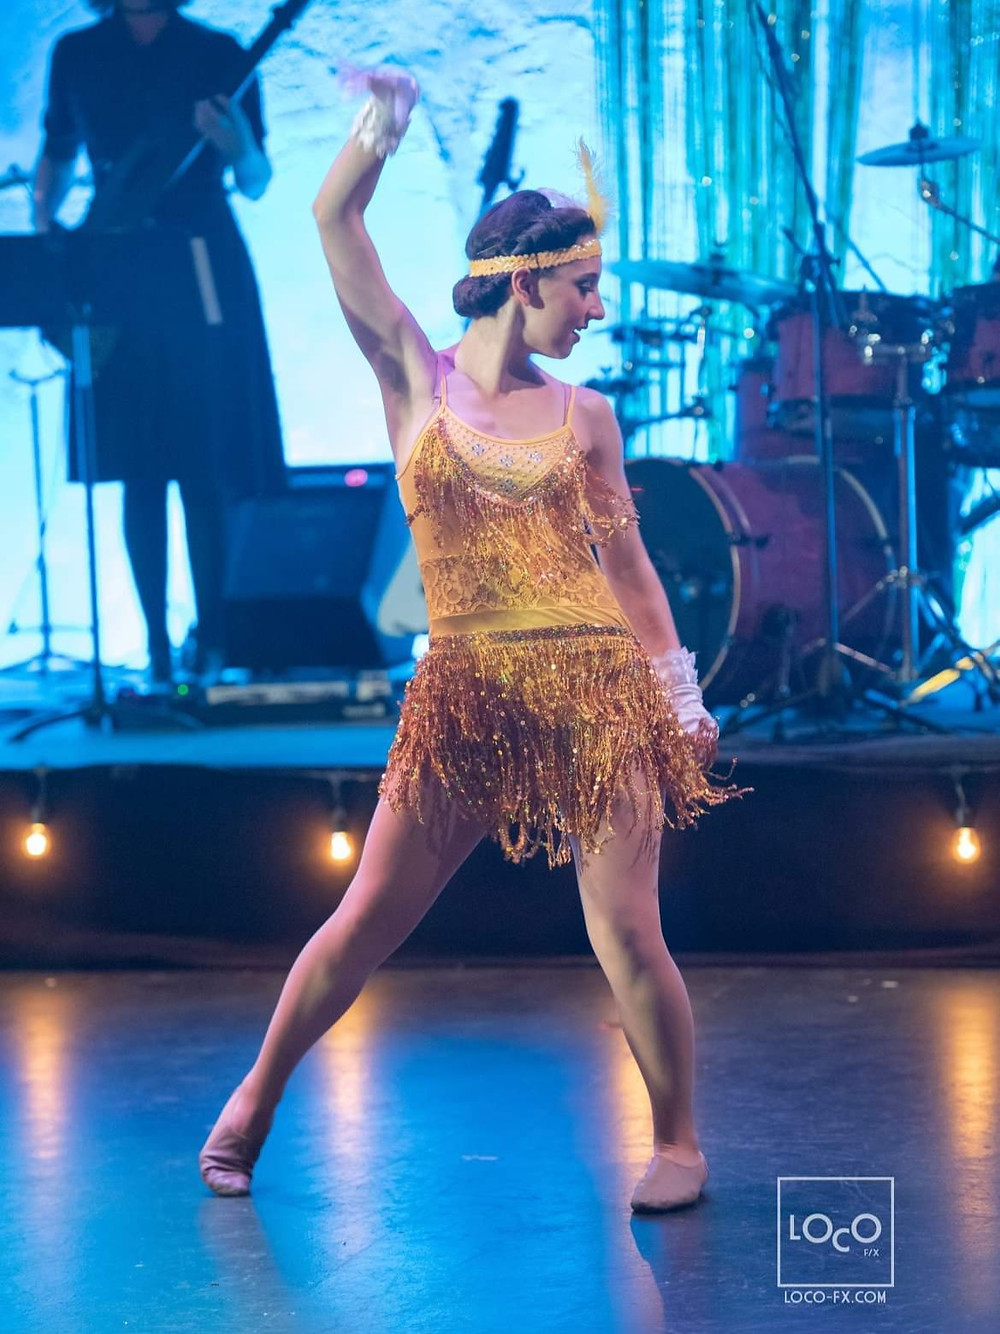 A dancer in a yellow fringe flapper dress and feather headband on stage with a band set up behind her.